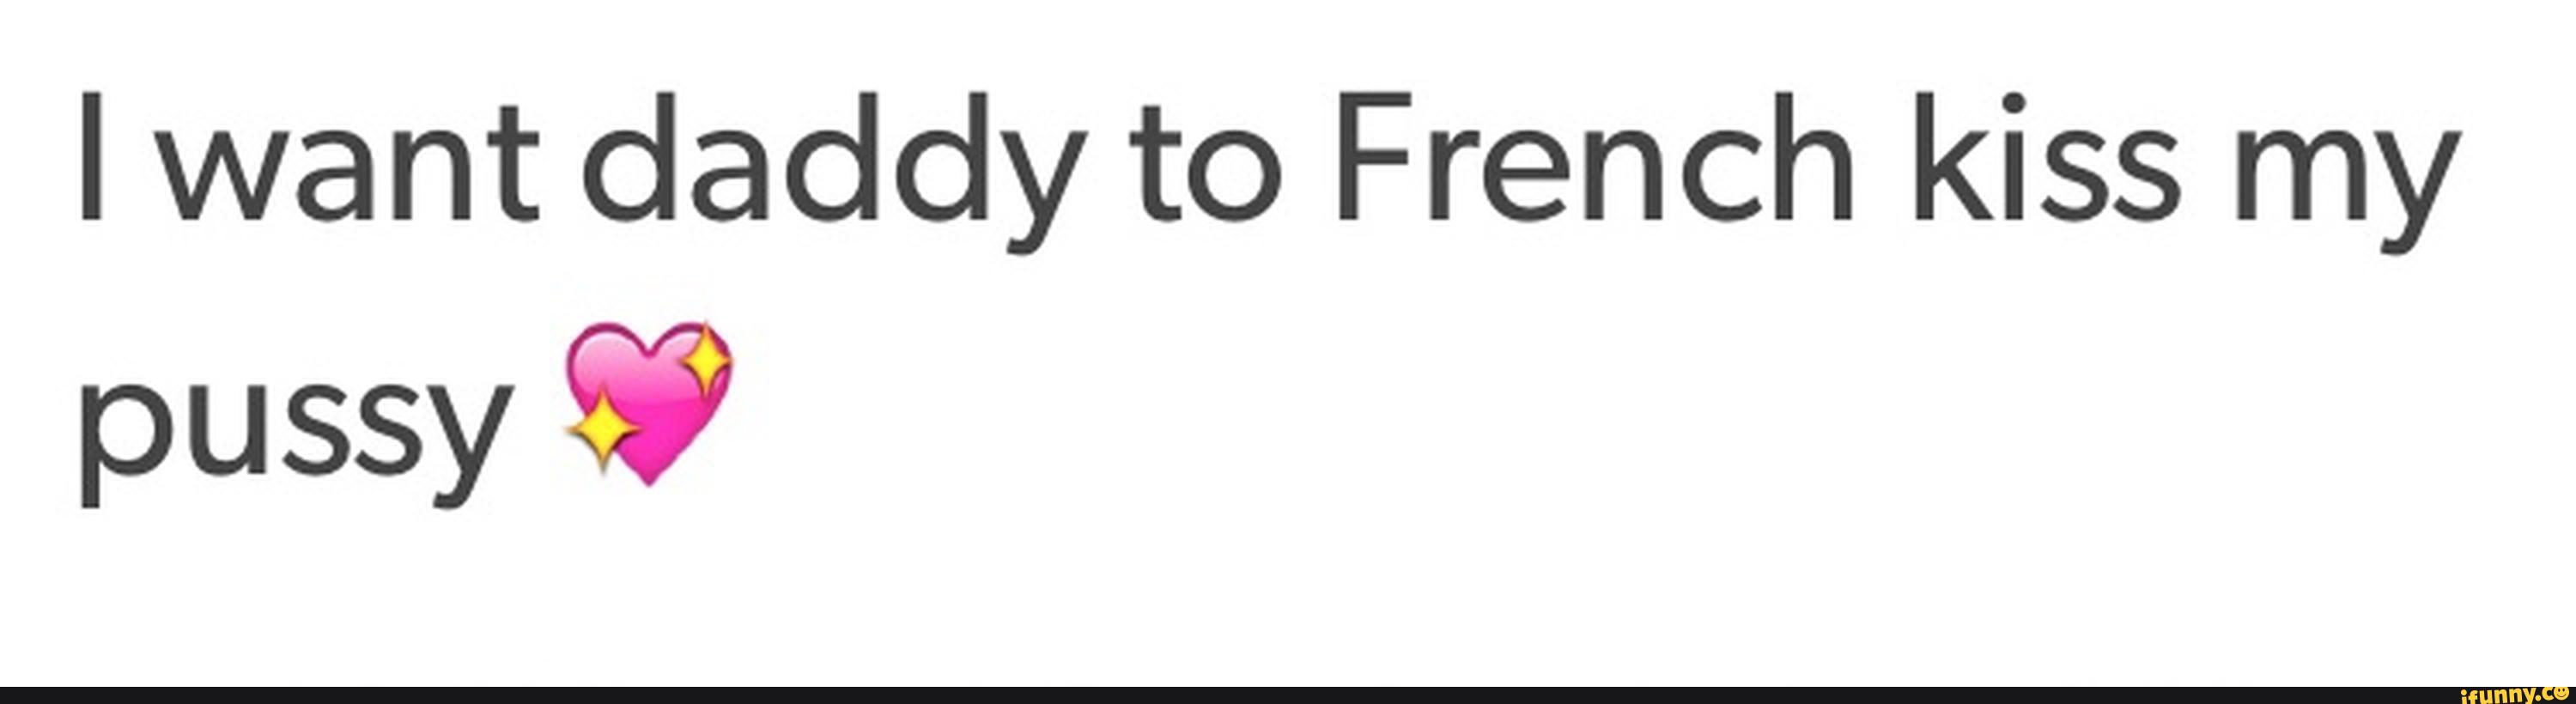 French Kiss On Pussy iwant daddy to french kiss my pussy �;? - ifunny :)